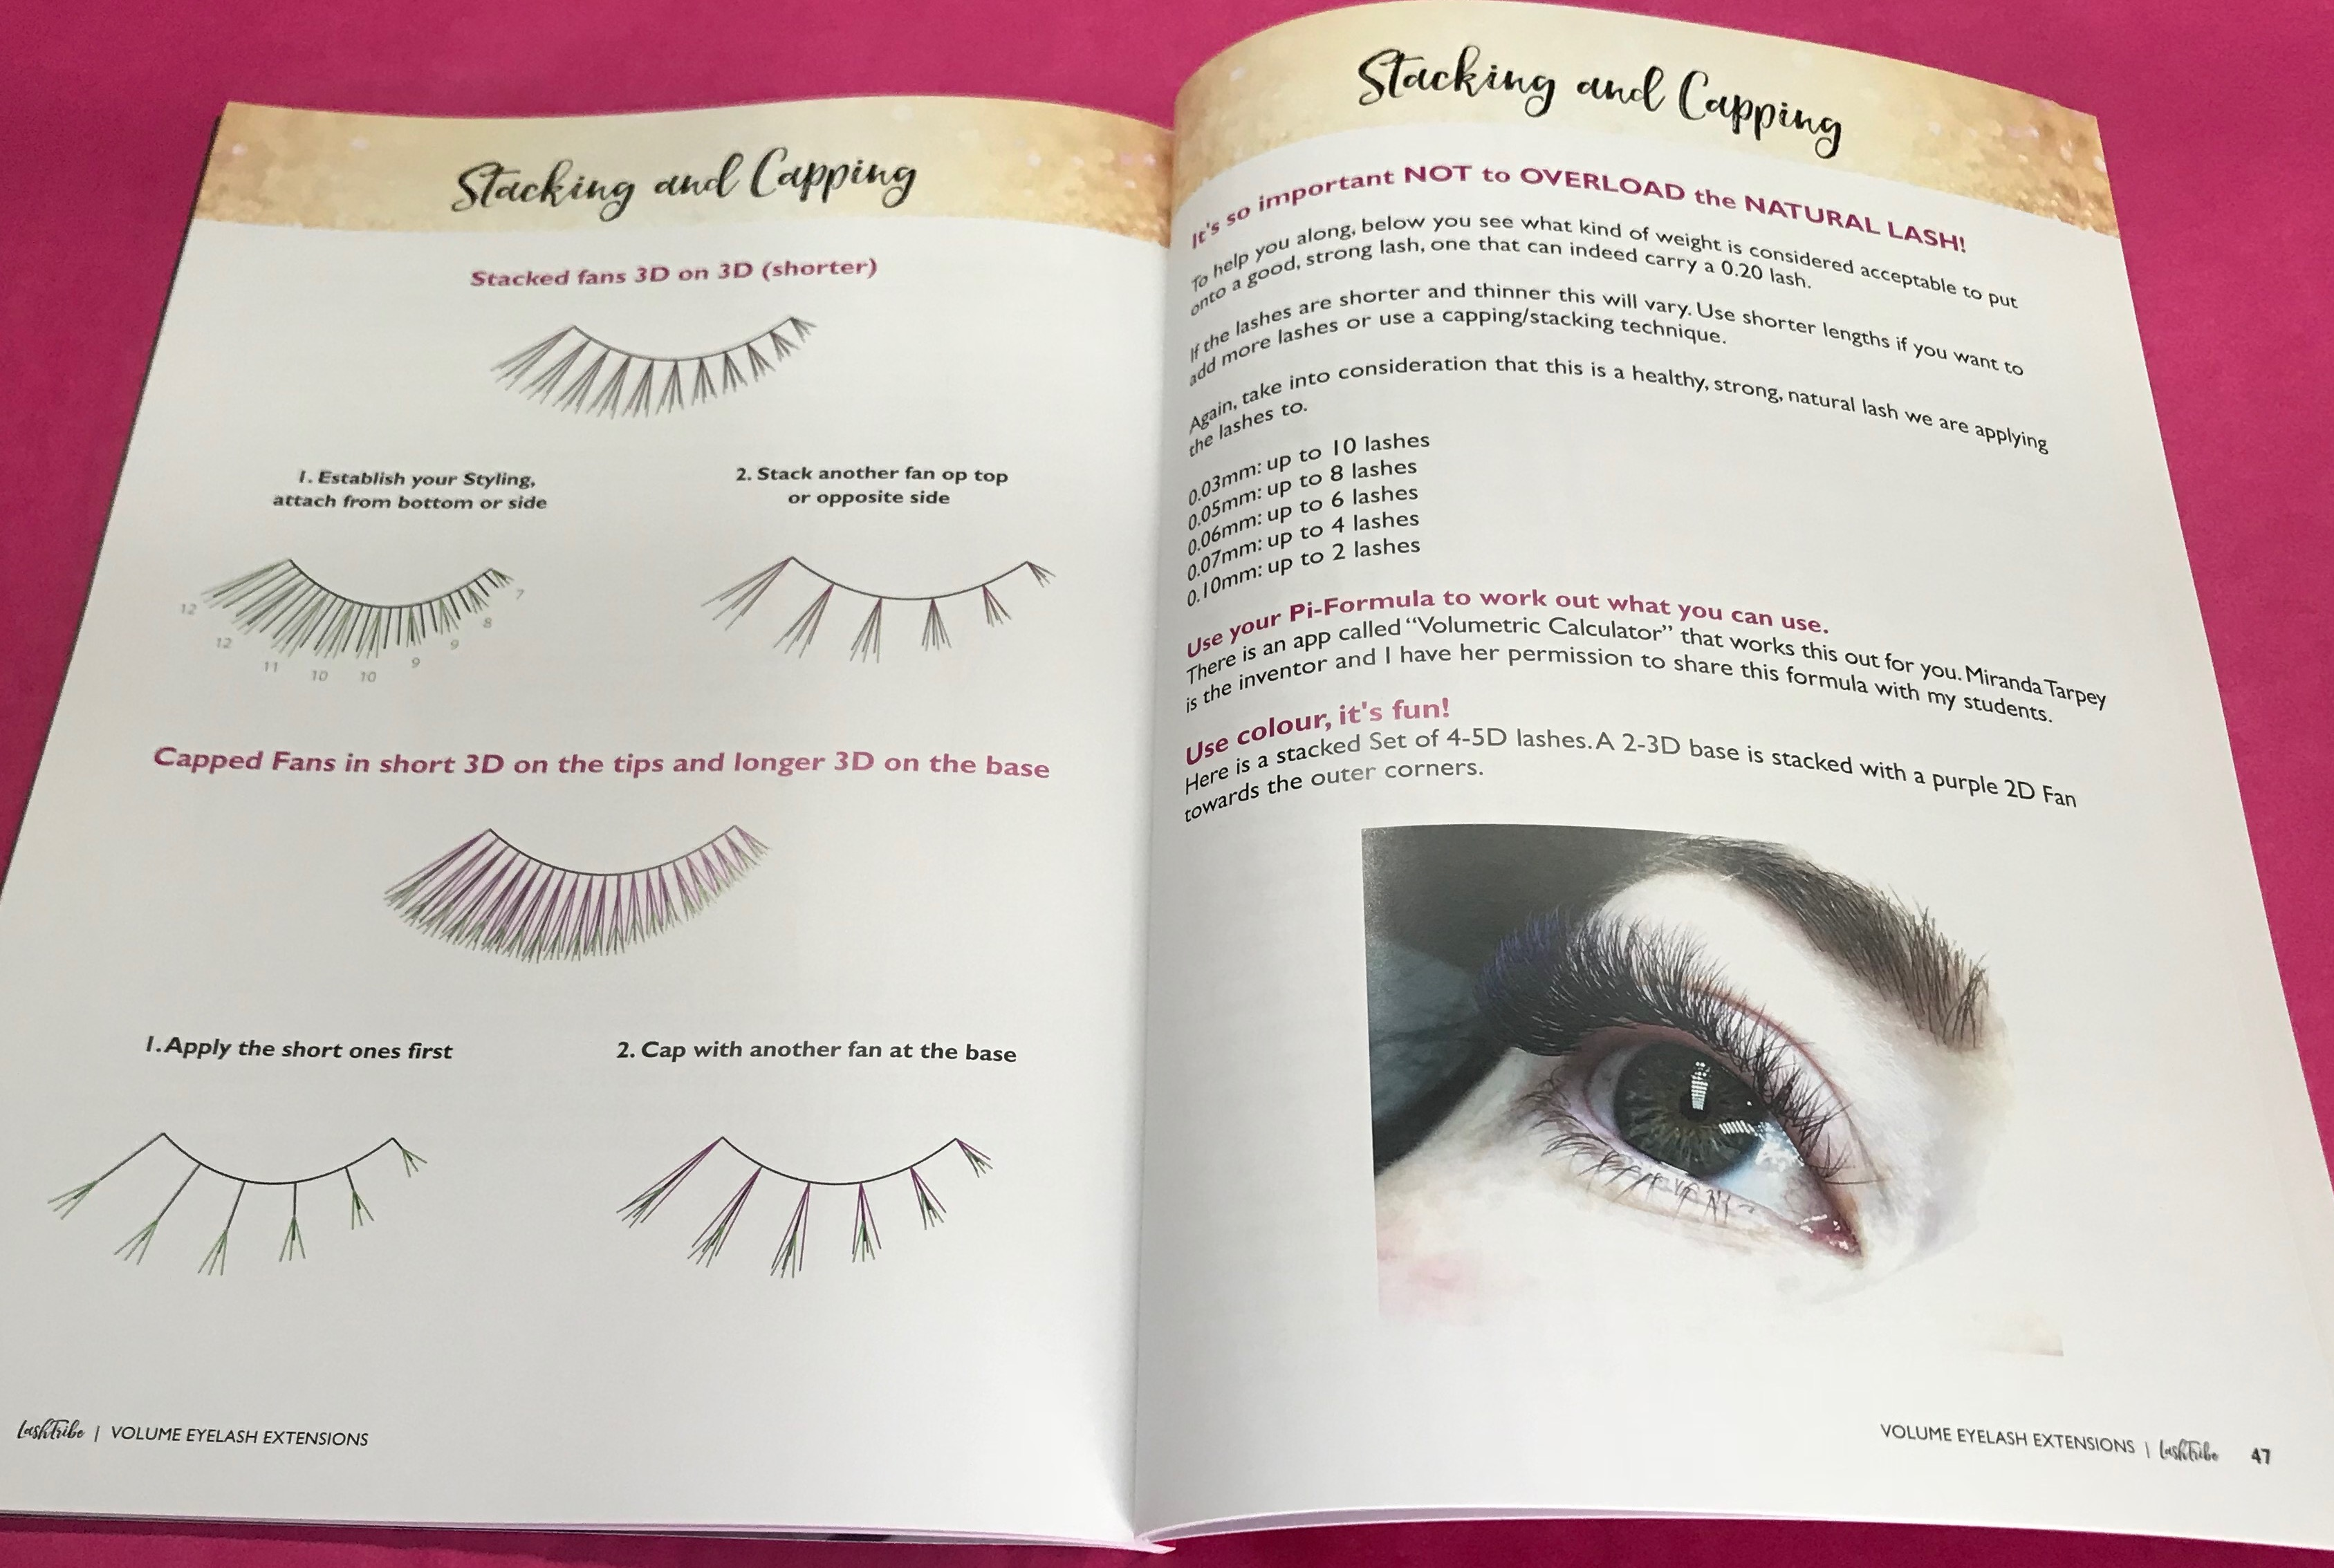 Volume Eyelash Extensions Manual Lash Tribe